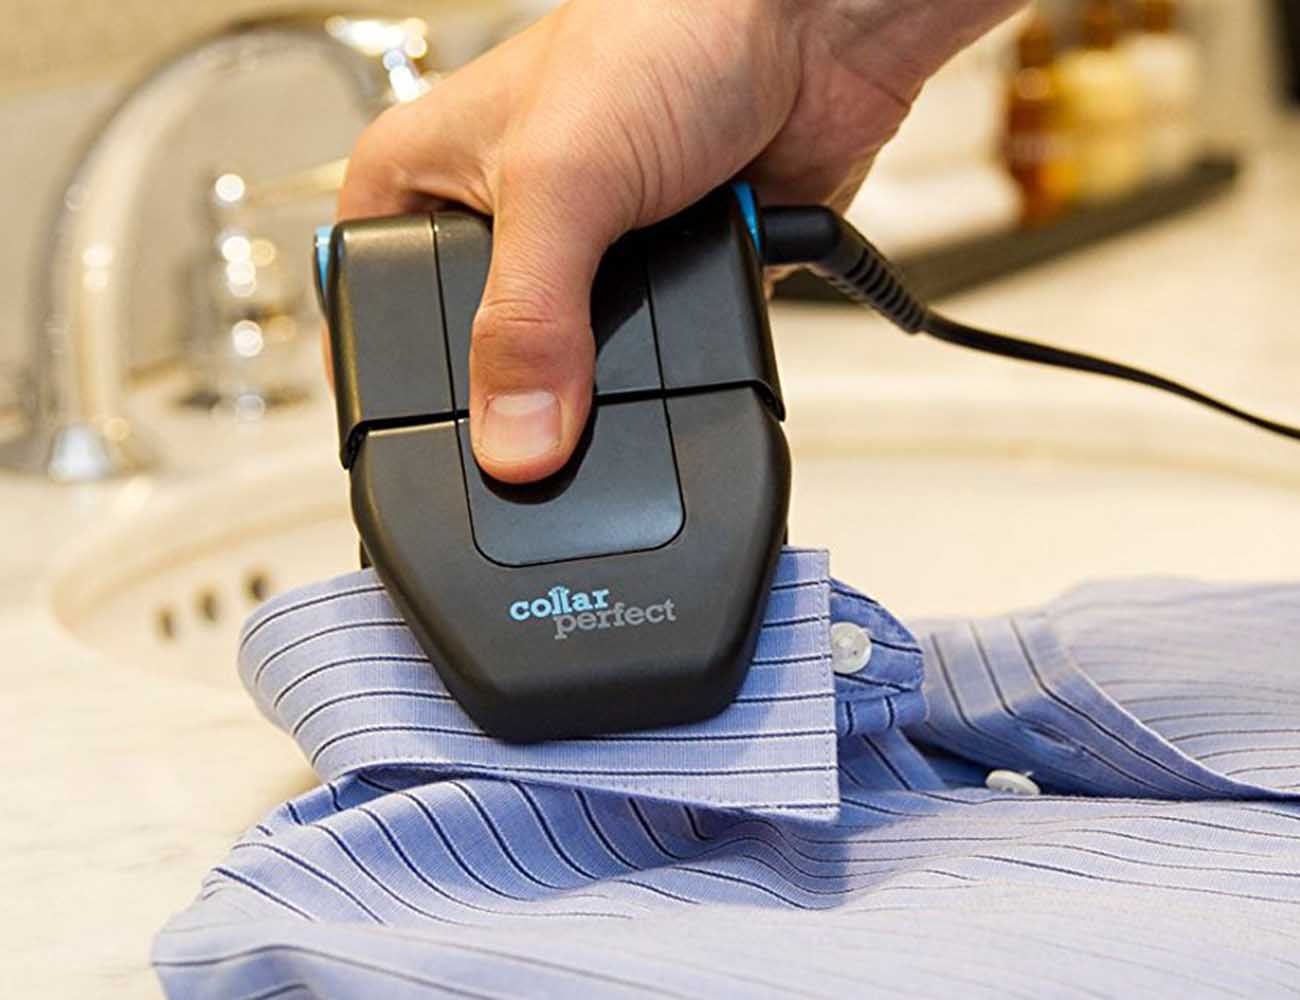 Collar Perfect – Compact Ironing Solution